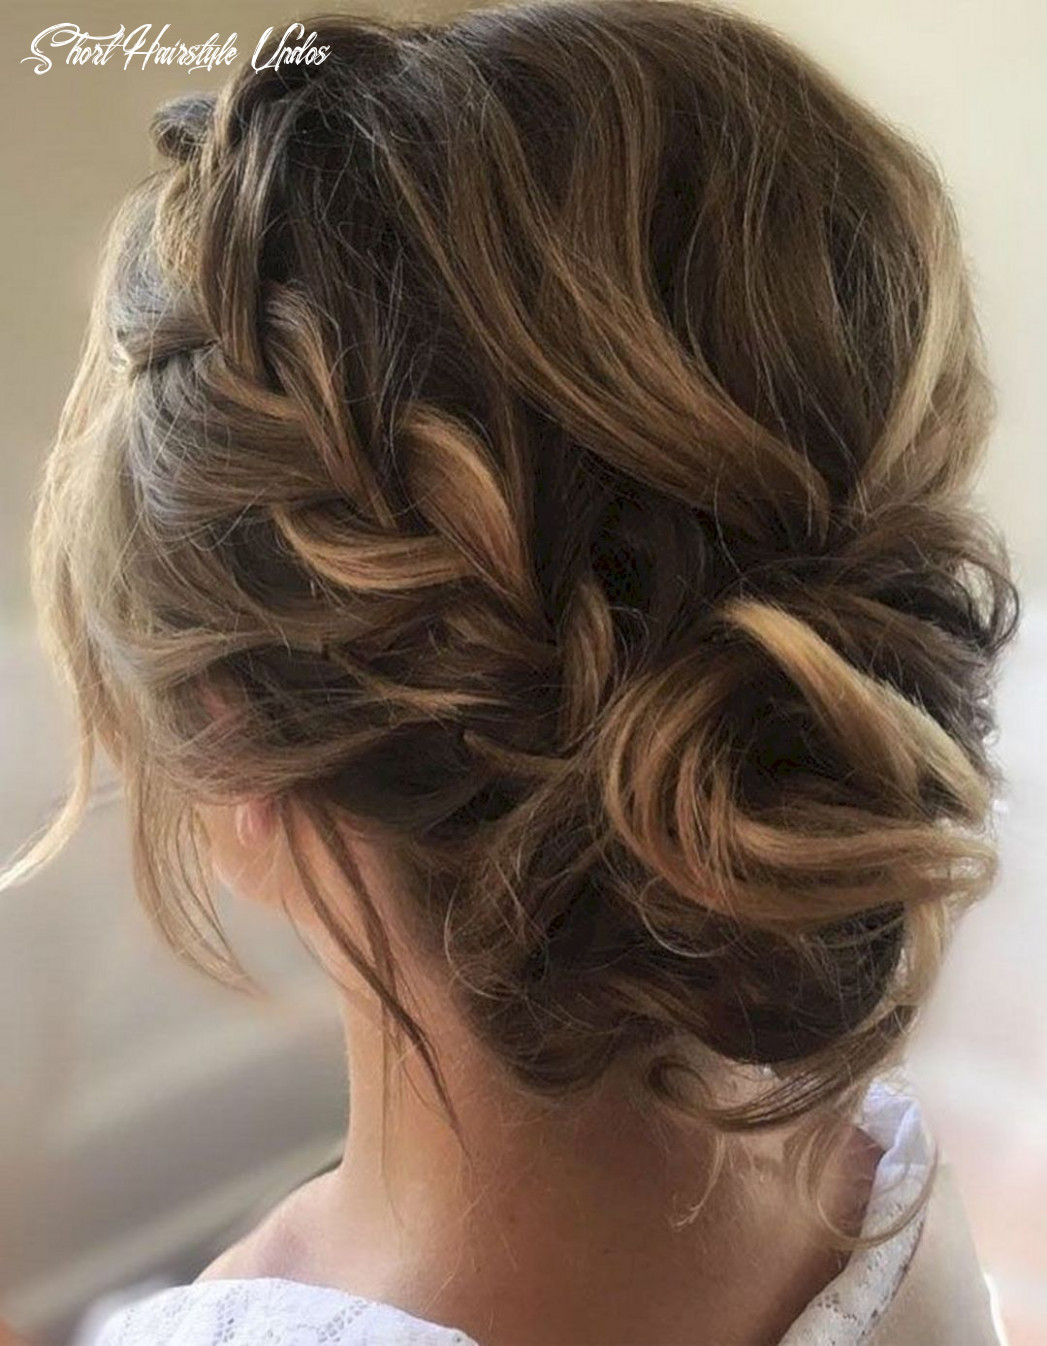 Georgeous short hairstyles | braided hairstyles updo, bridesmaid